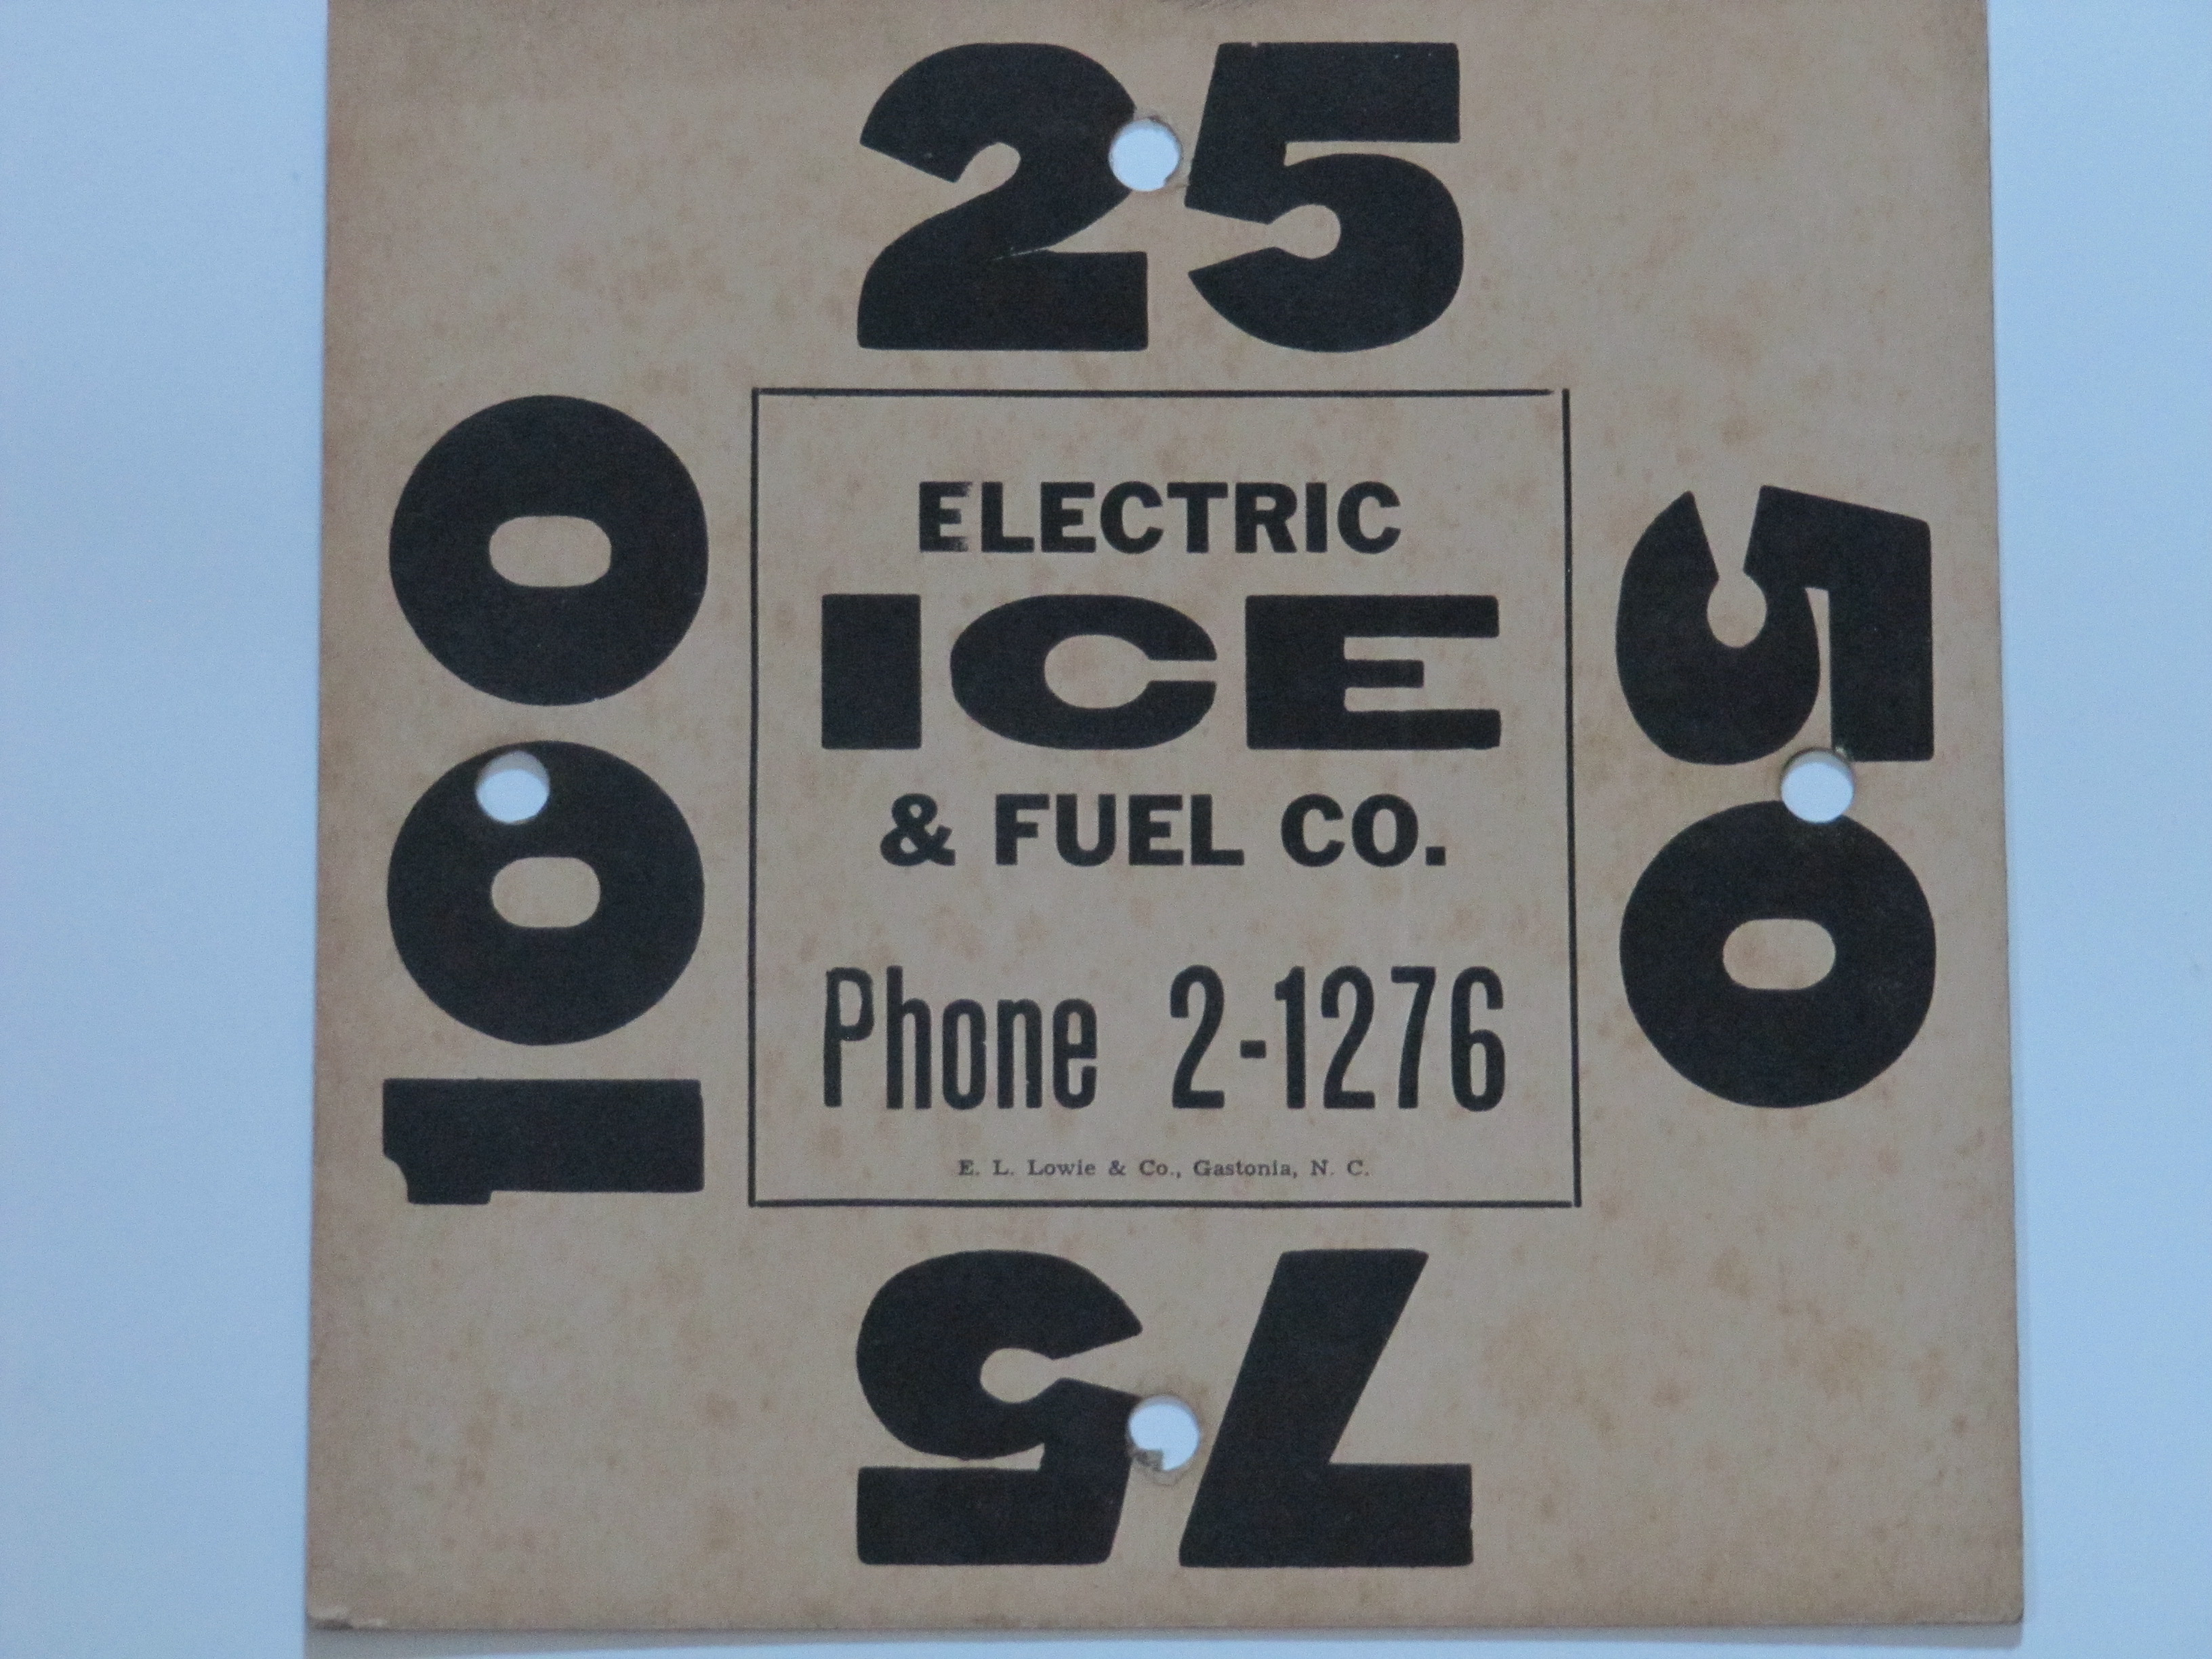 Electric Ice & Fuel Co.